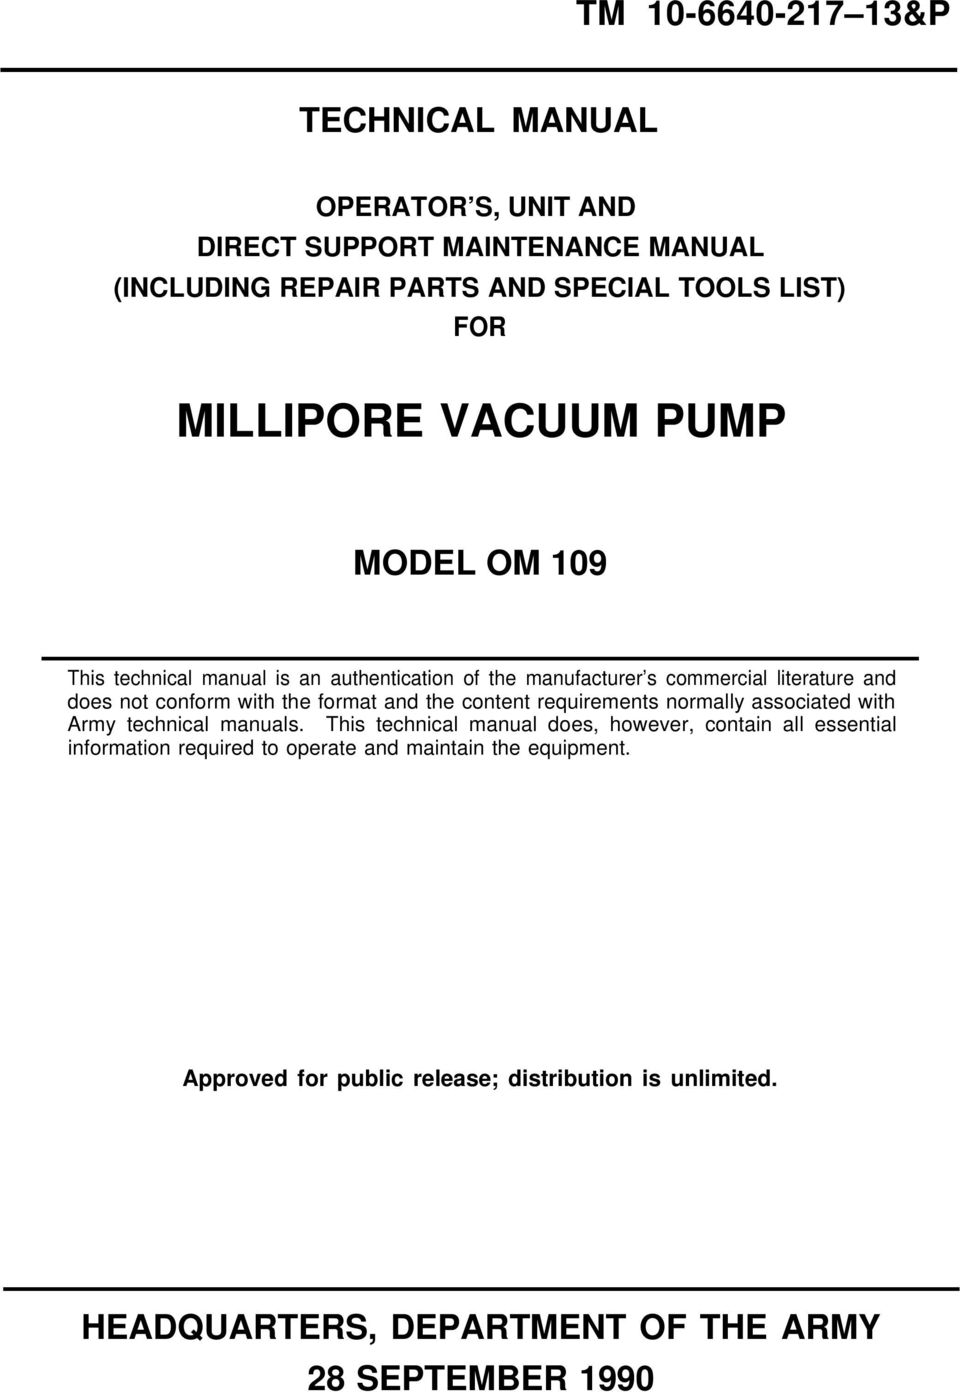 Millipore vacuum pump pdf format and the content requirements normally associated with army technical manuals ccuart Choice Image